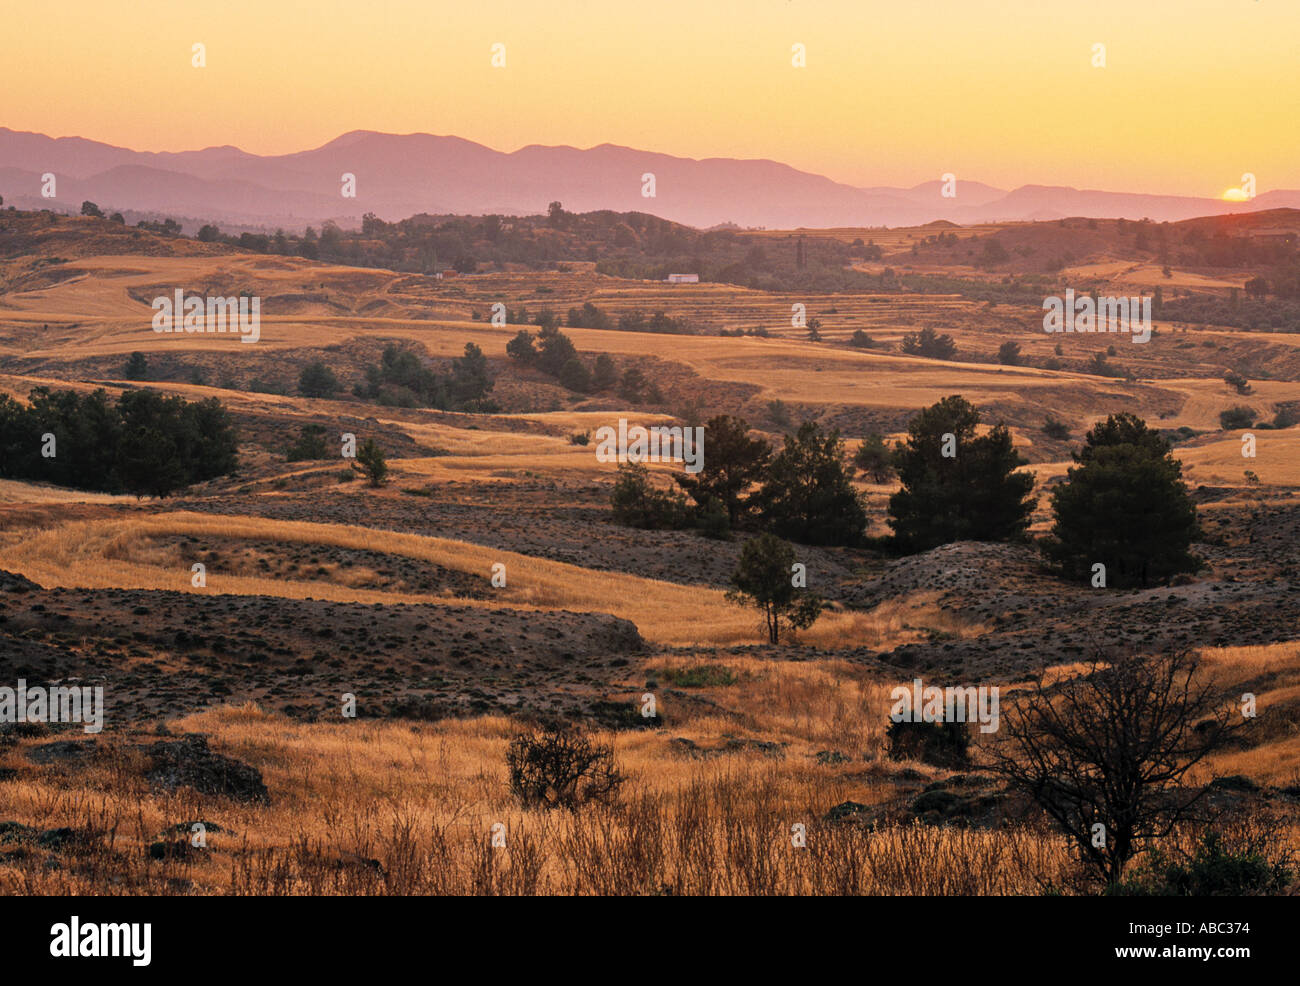 Landscape, Troodhos Foothills, Greek Cyprus - Stock Image